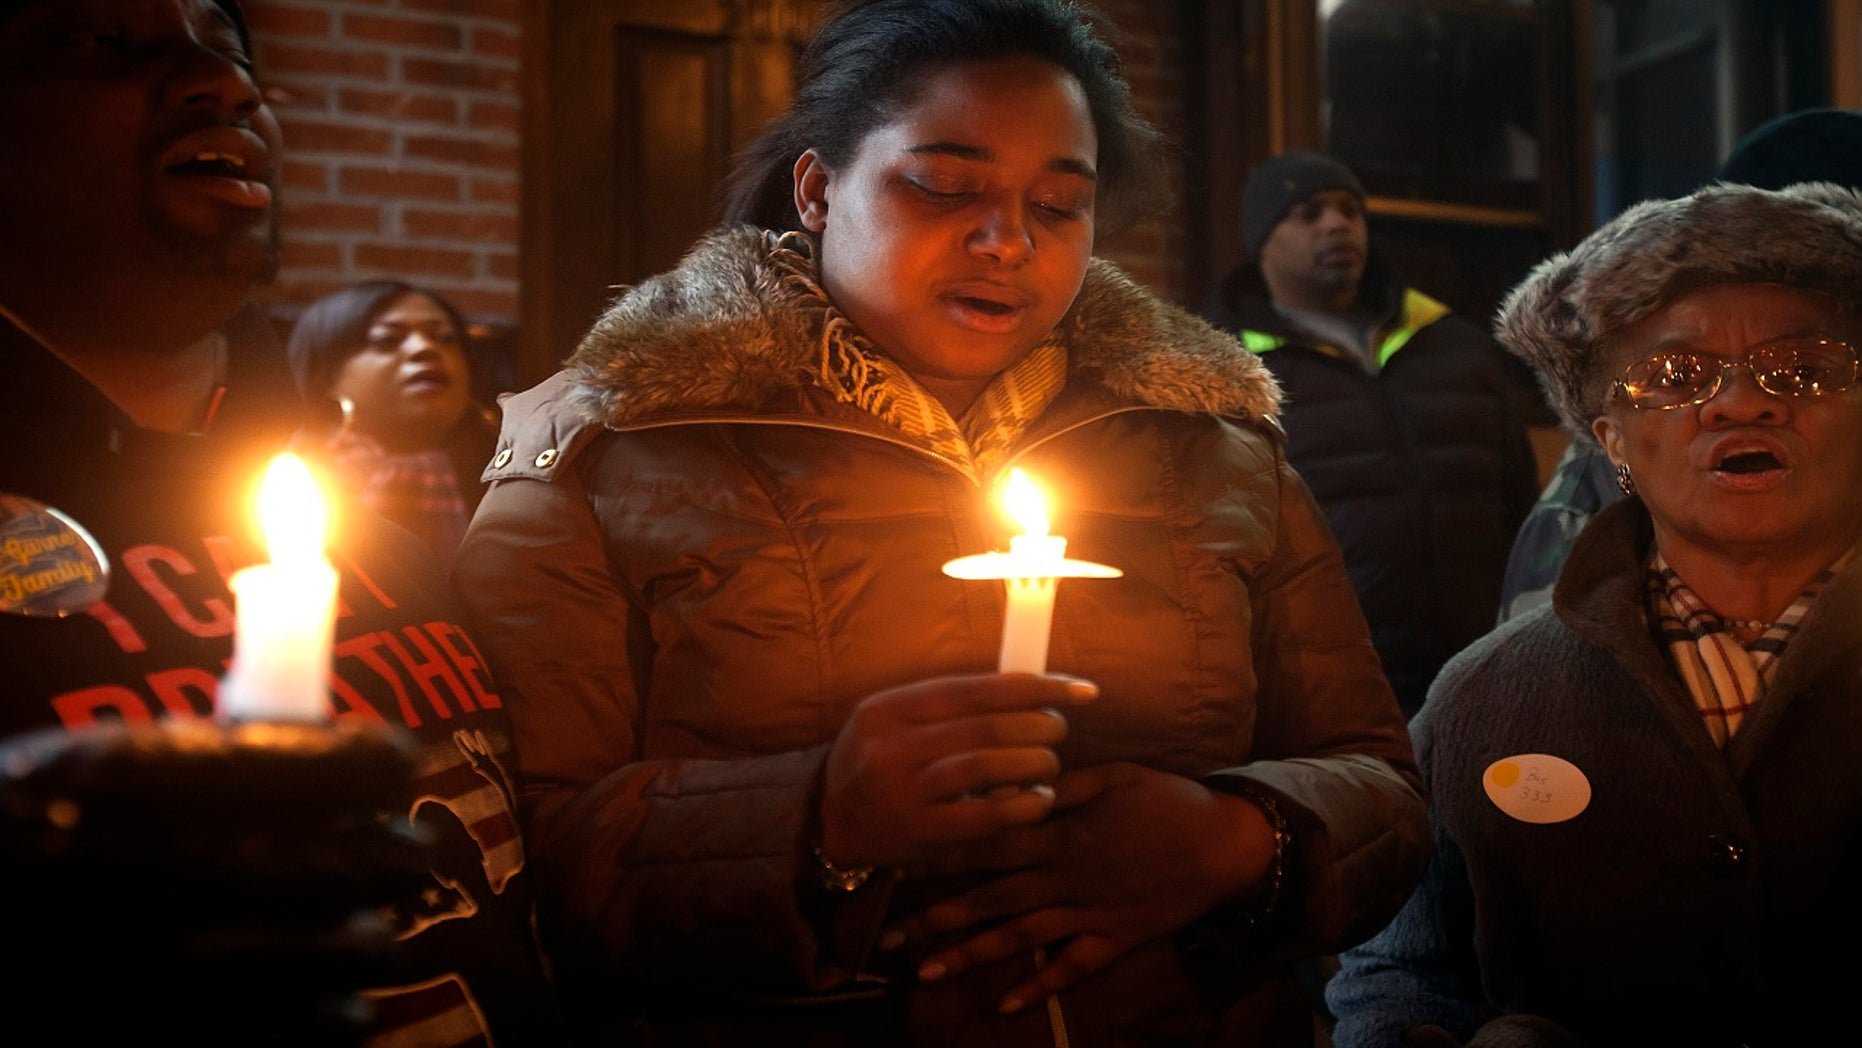 Erica Garner, pictured here in January 2015, has been in a medically induced coma since Saturday, after suffering a heart attack.